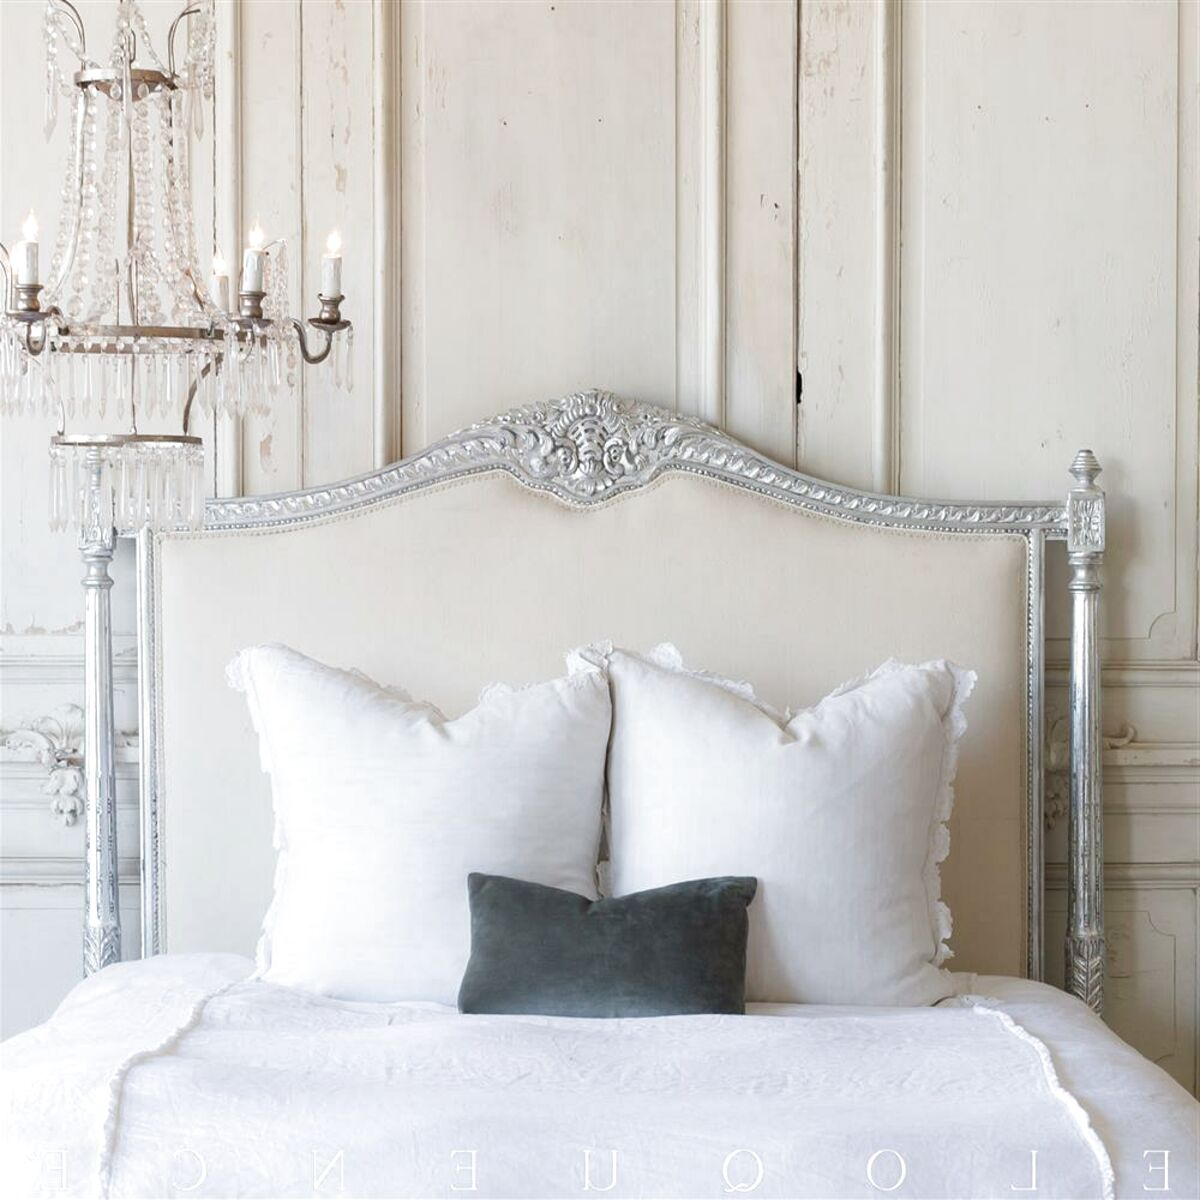 French Style Headboard For Sale In Uk View 49 Bargains